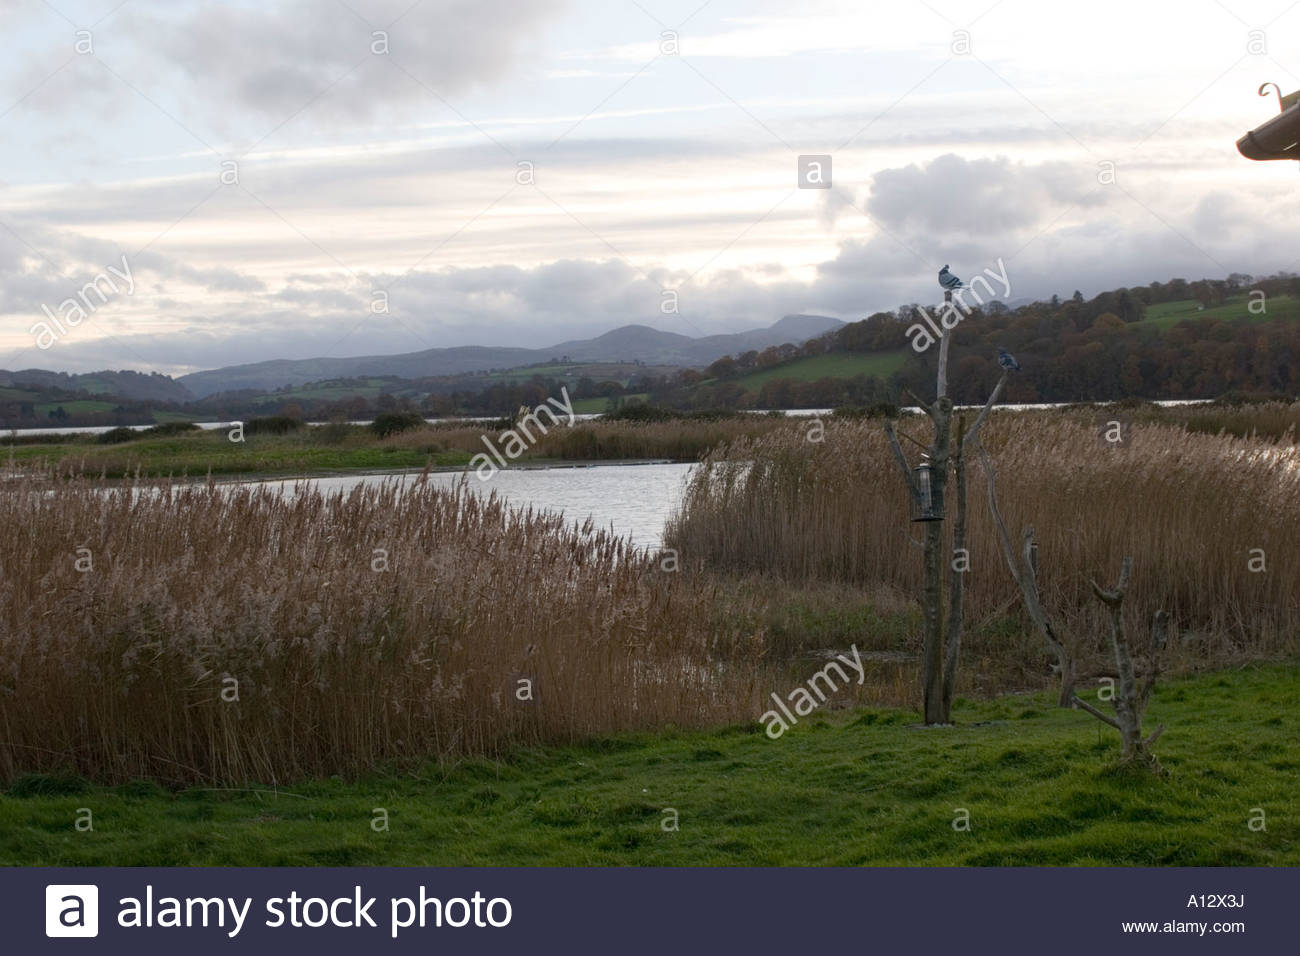 Conwy Nature Reserve Llandudno Junction, Conwy, North Wales RSPB reserve Stock Photo, Royalty Free Image ...